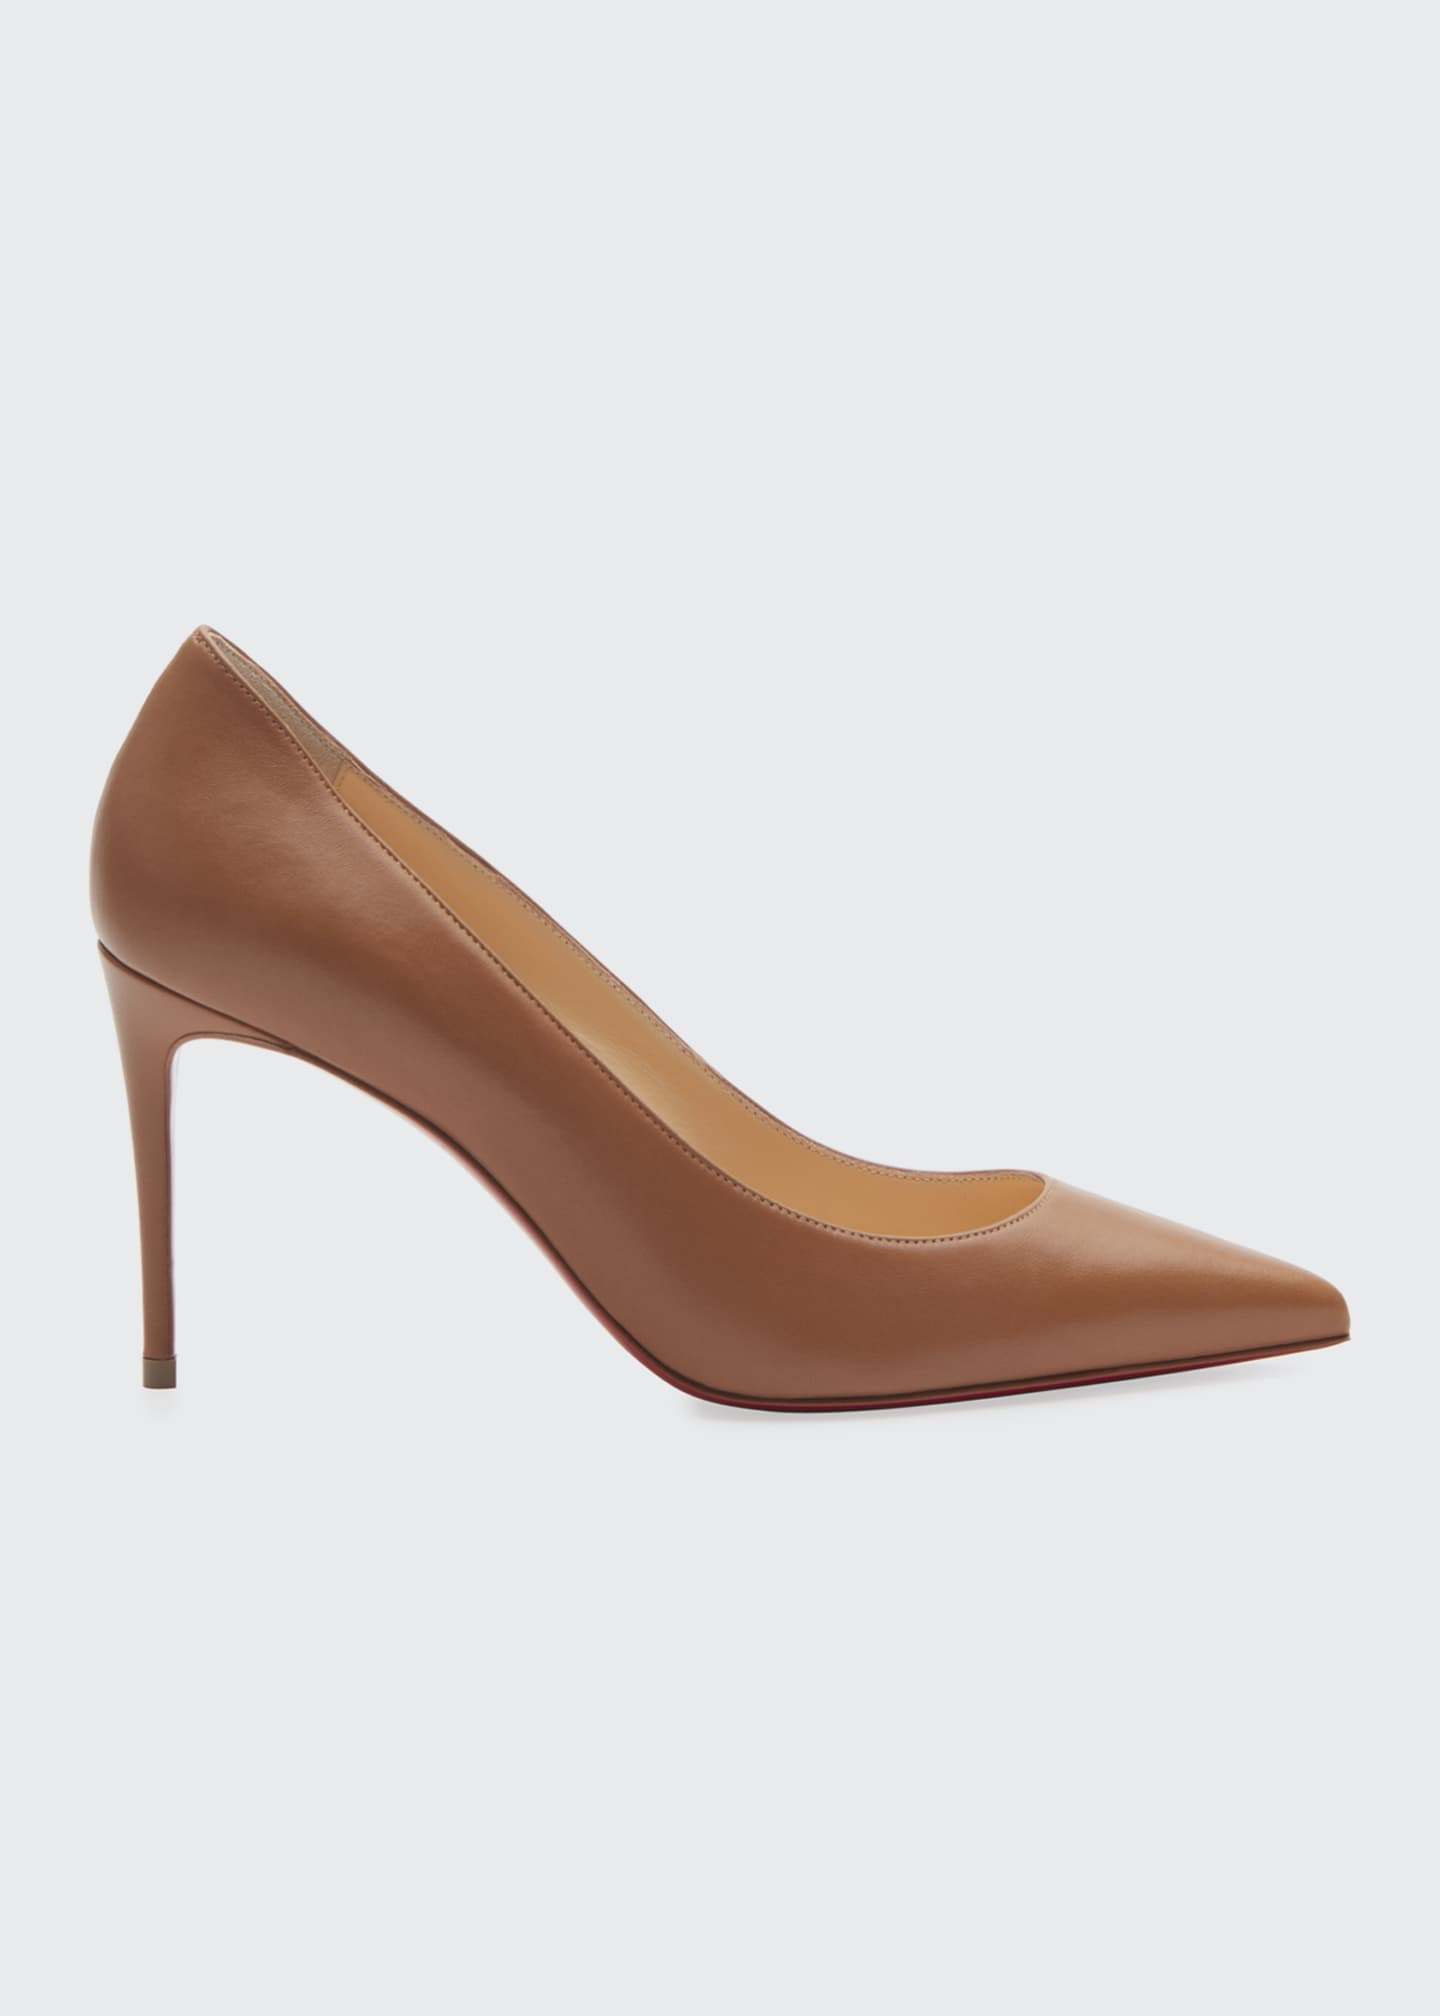 Image 1 of 3: Kate 85mm Red Sole Pumps